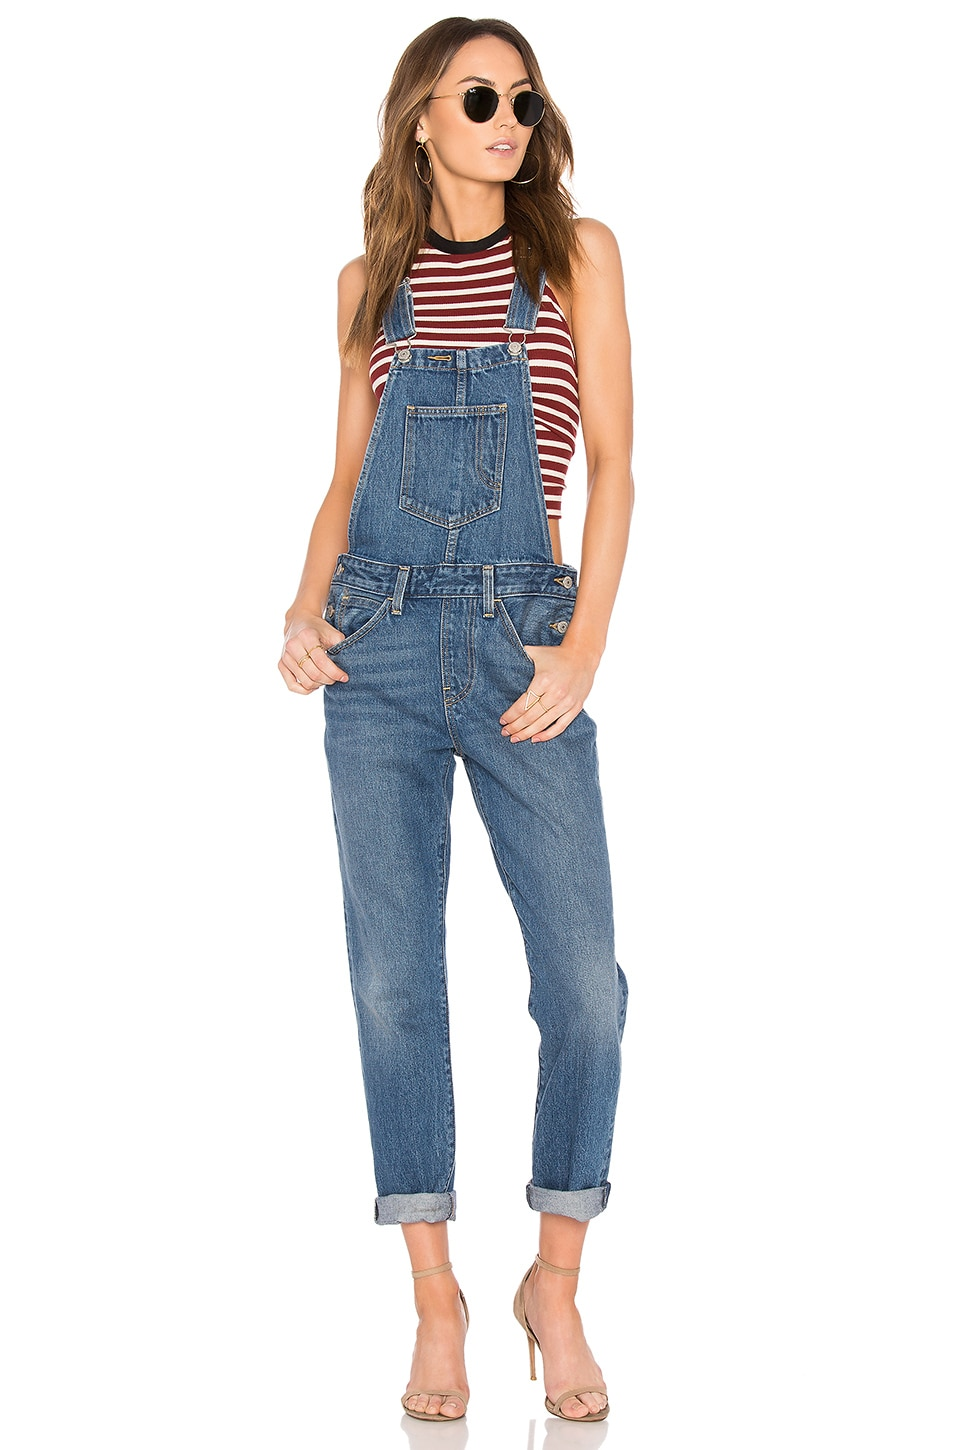 LEVI'S Original Overall in Dylans Dog